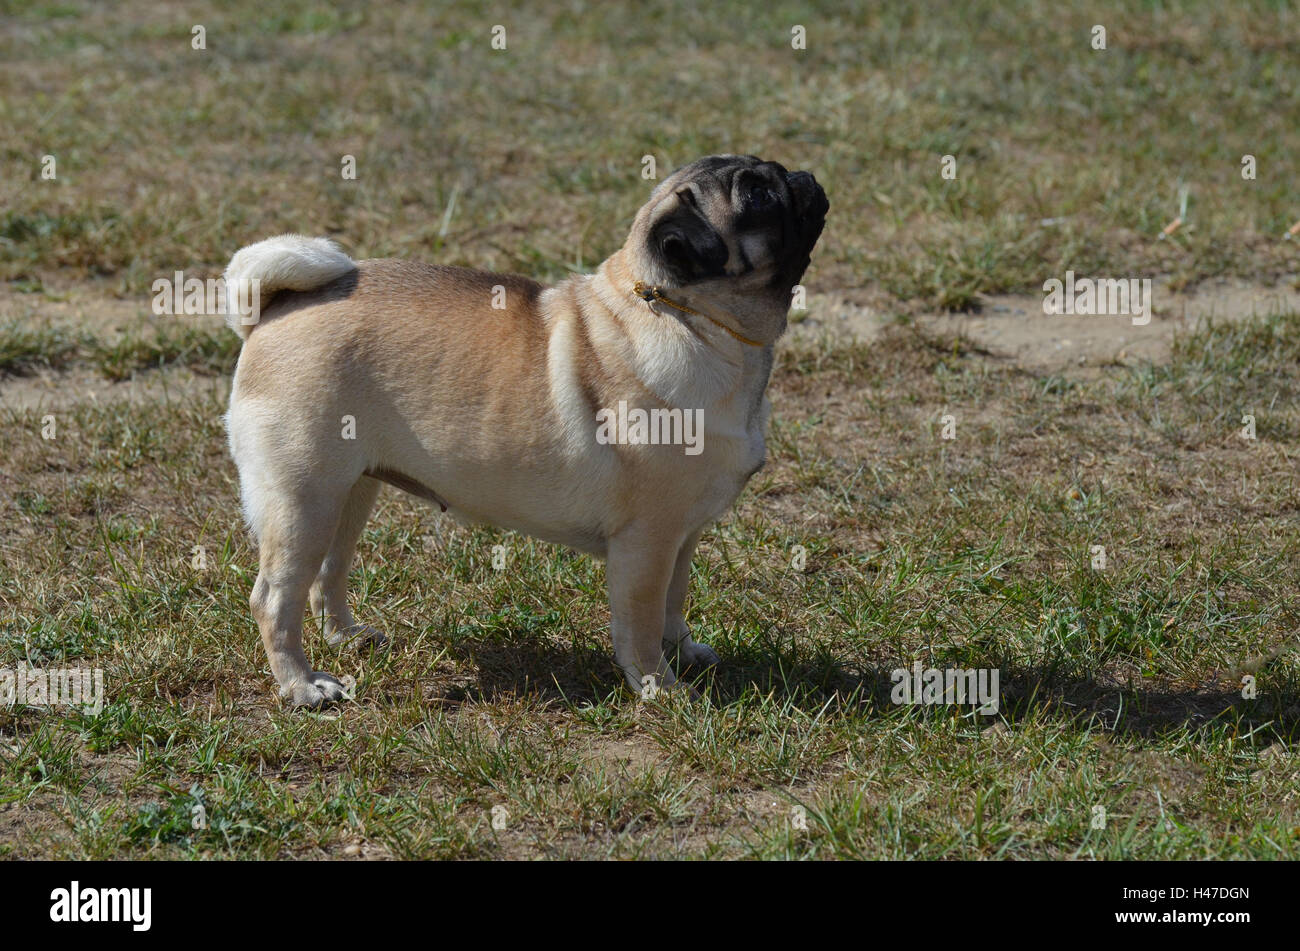 Pug dog looking up attentively. - Stock Image